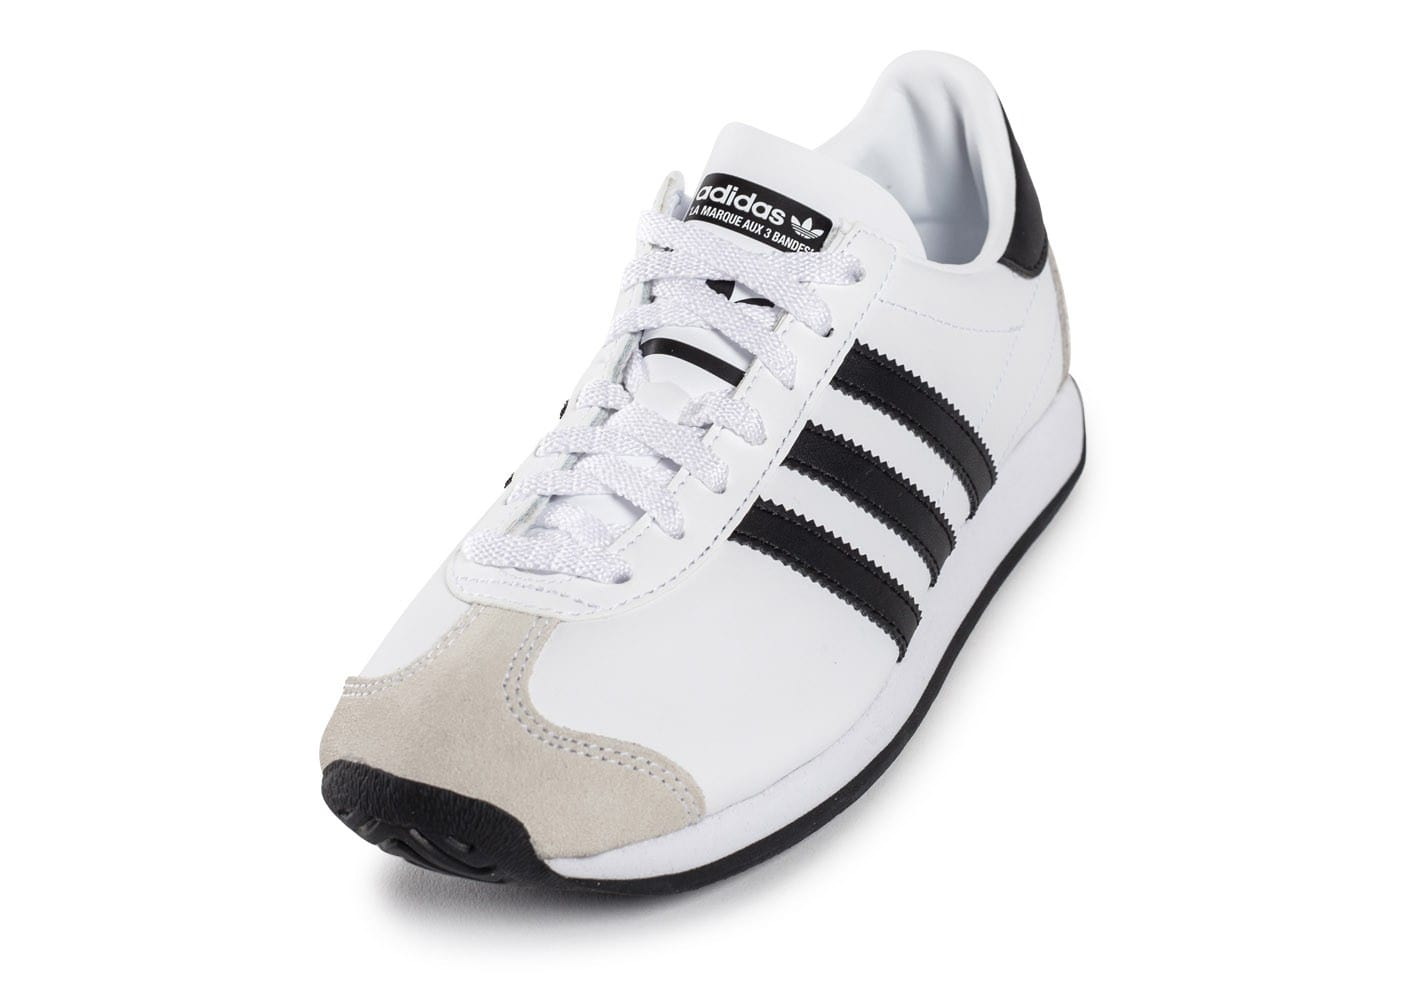 Chaussures Adidas Country OG J qZ74M